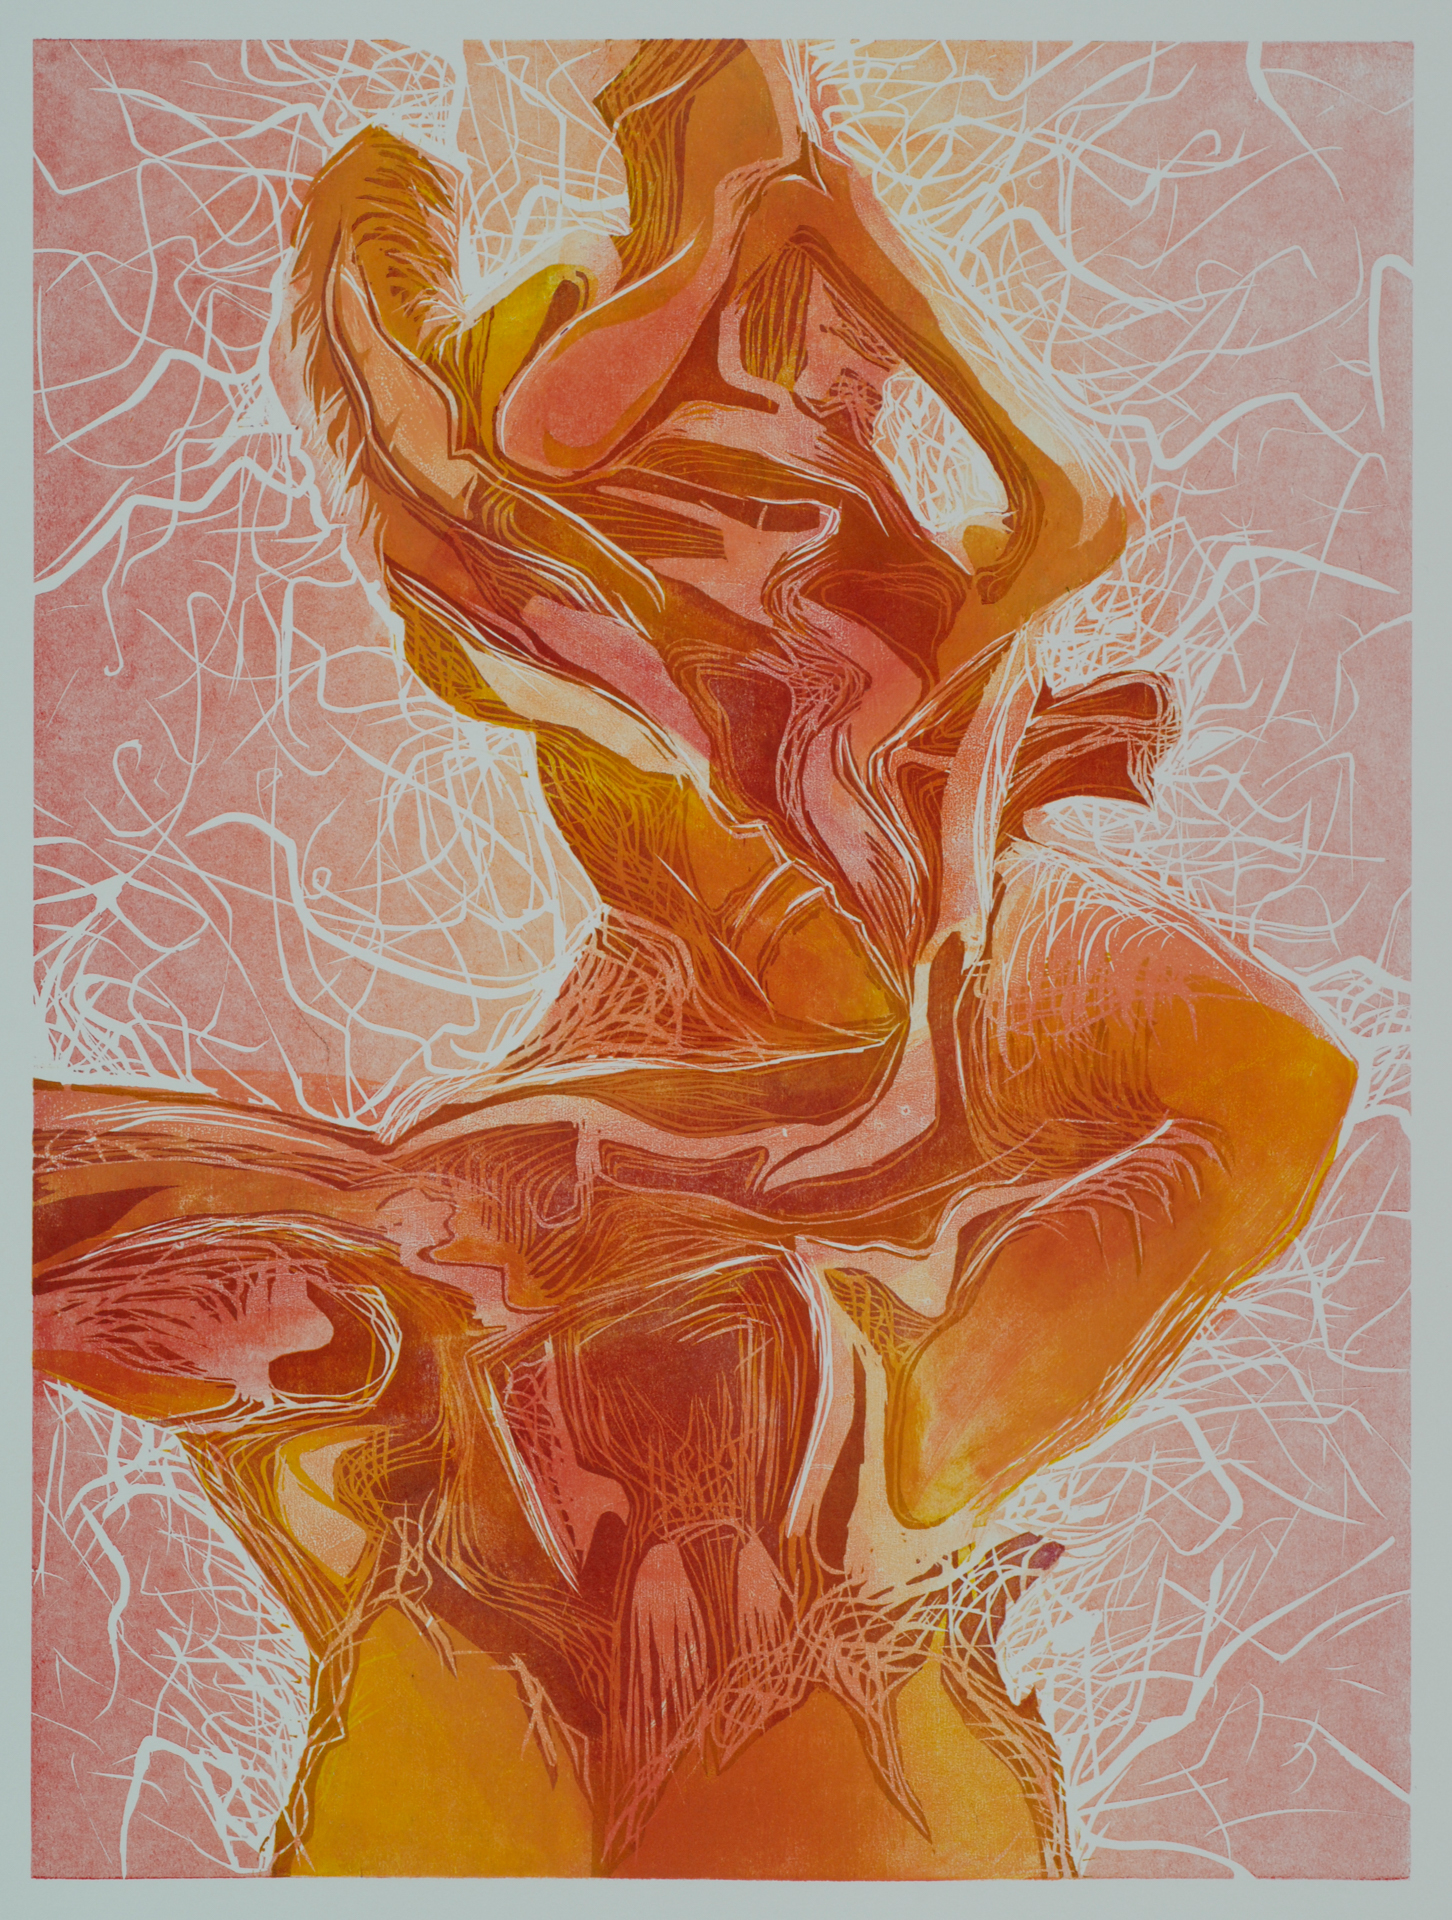 "Flame, Reduction Woodcut, 30"" x 24"" framed, 2008  SALE:$320 Original: $400"